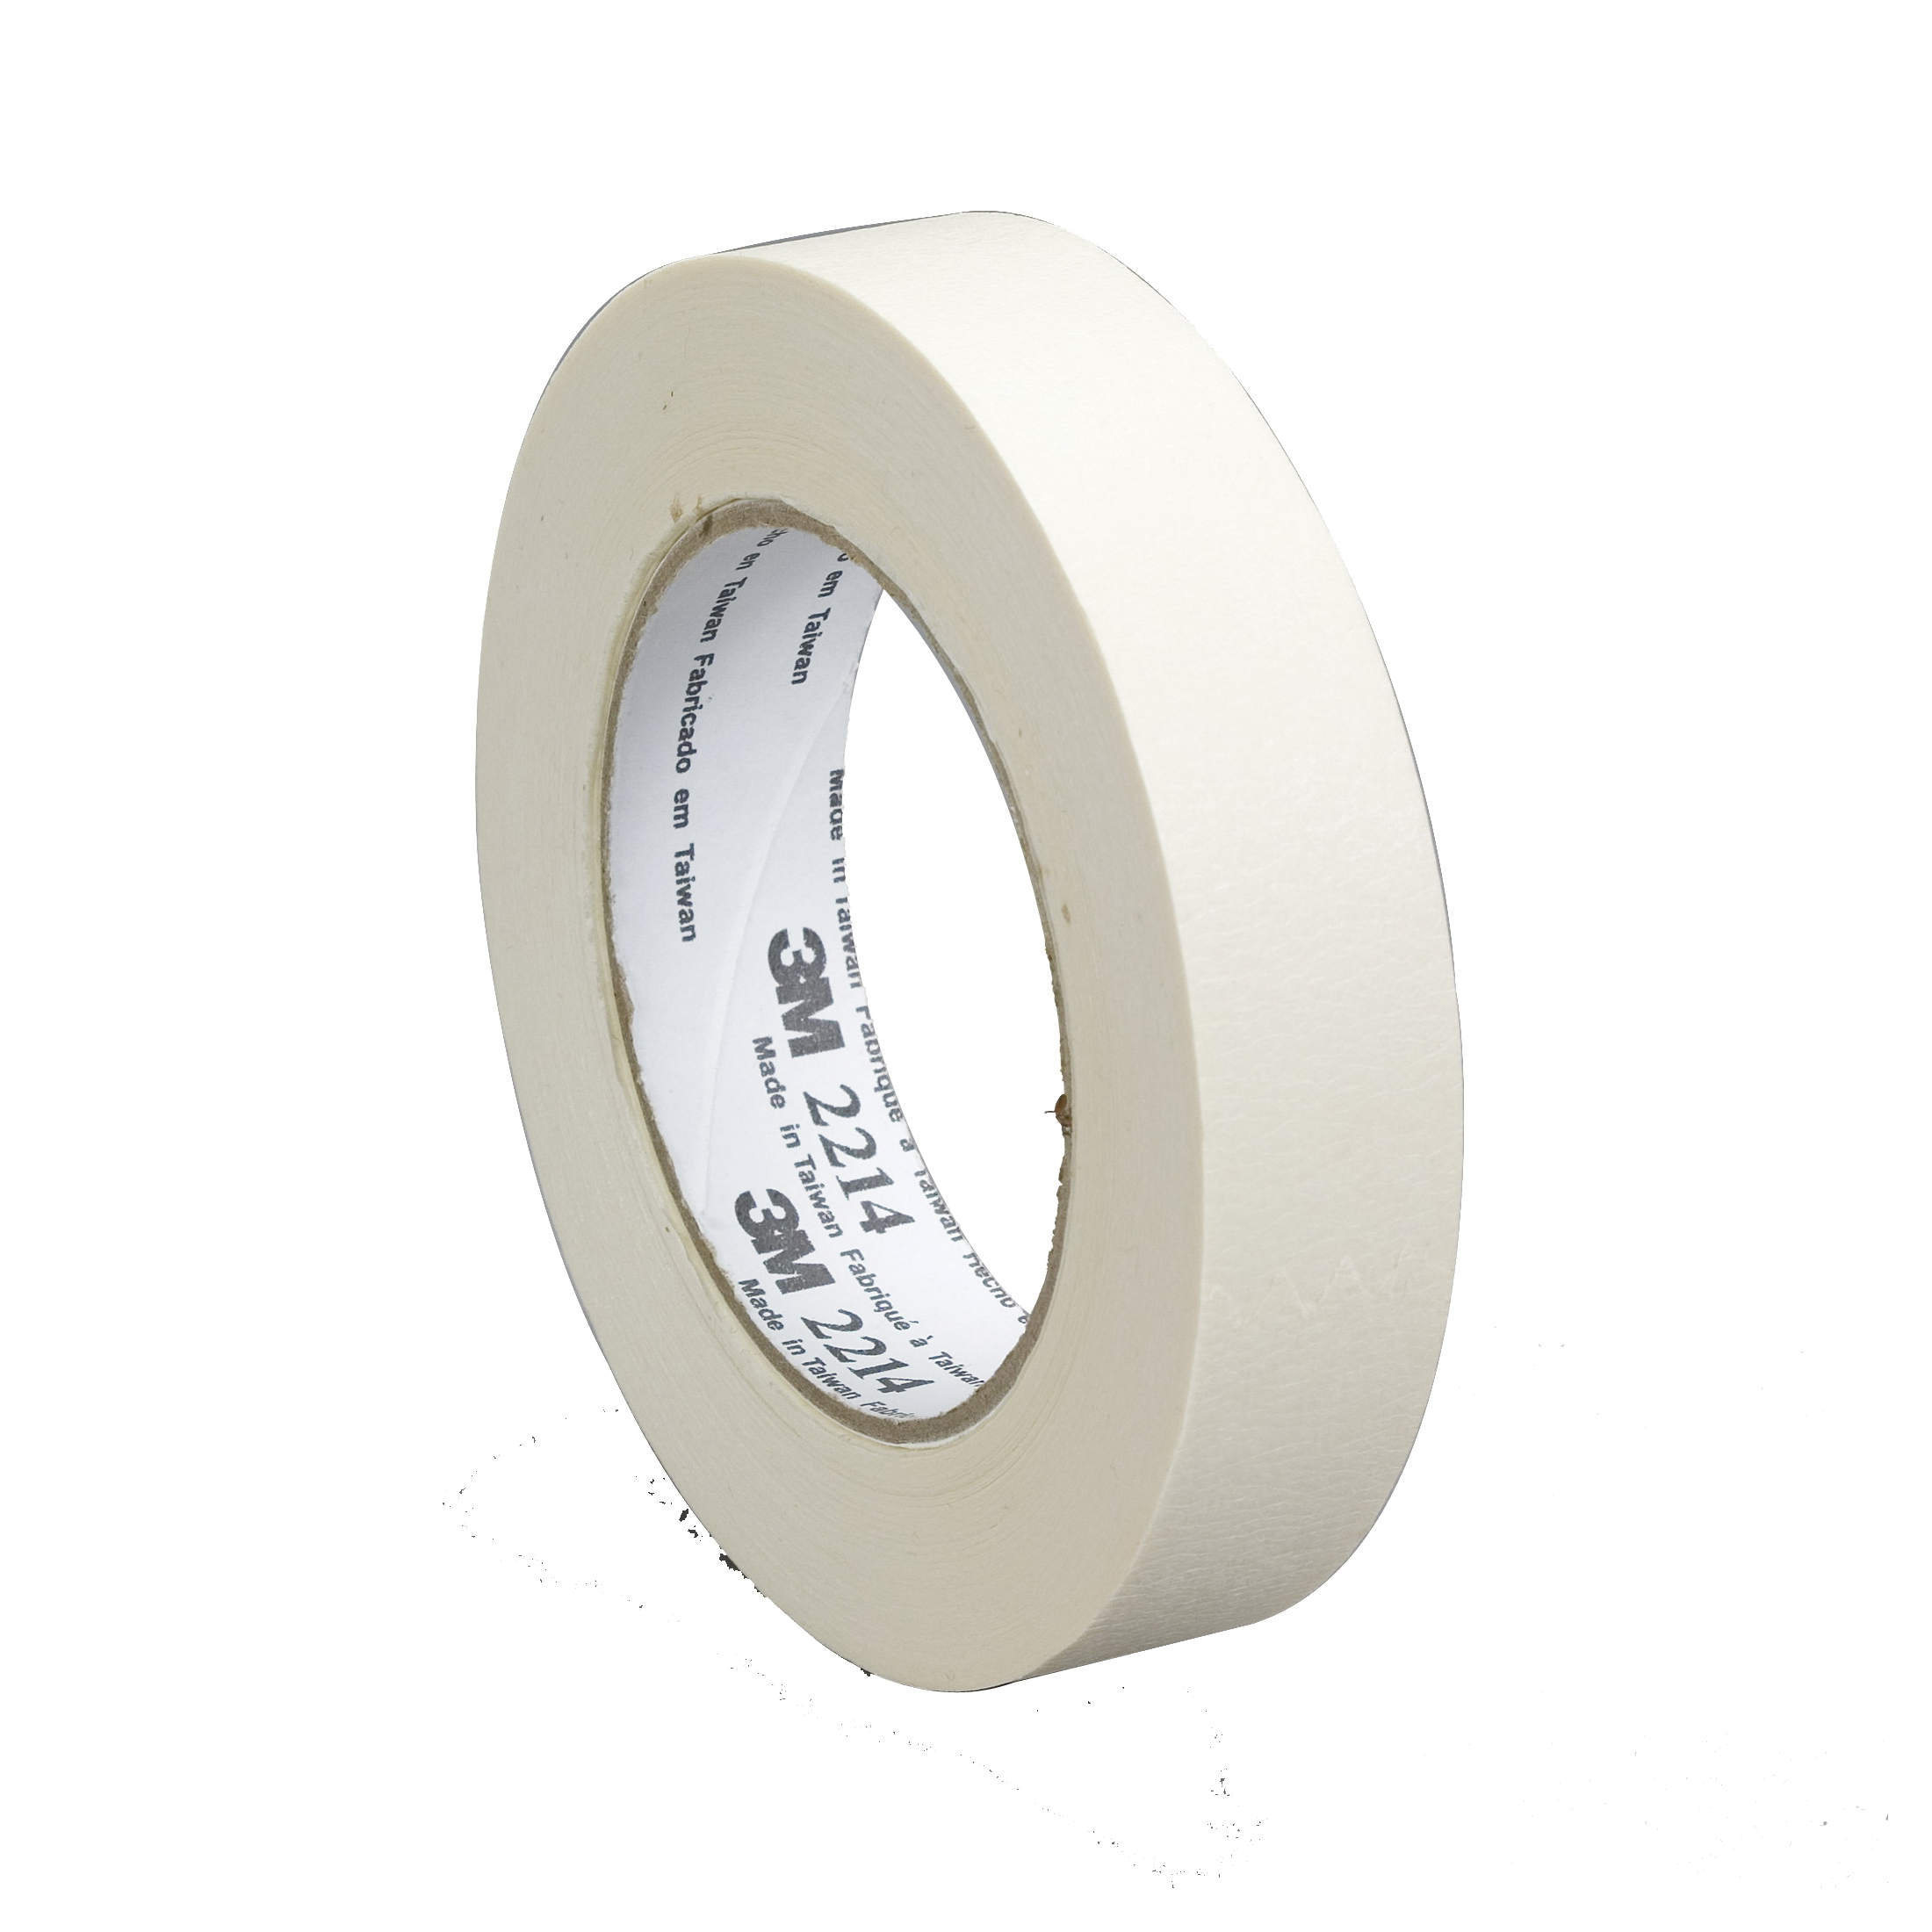 3M™ 021200-26078 Masking Tape, 55 m L x 72 mm W, 5.4 mil THK, Rubber Adhesive, Crepe Paper Backing